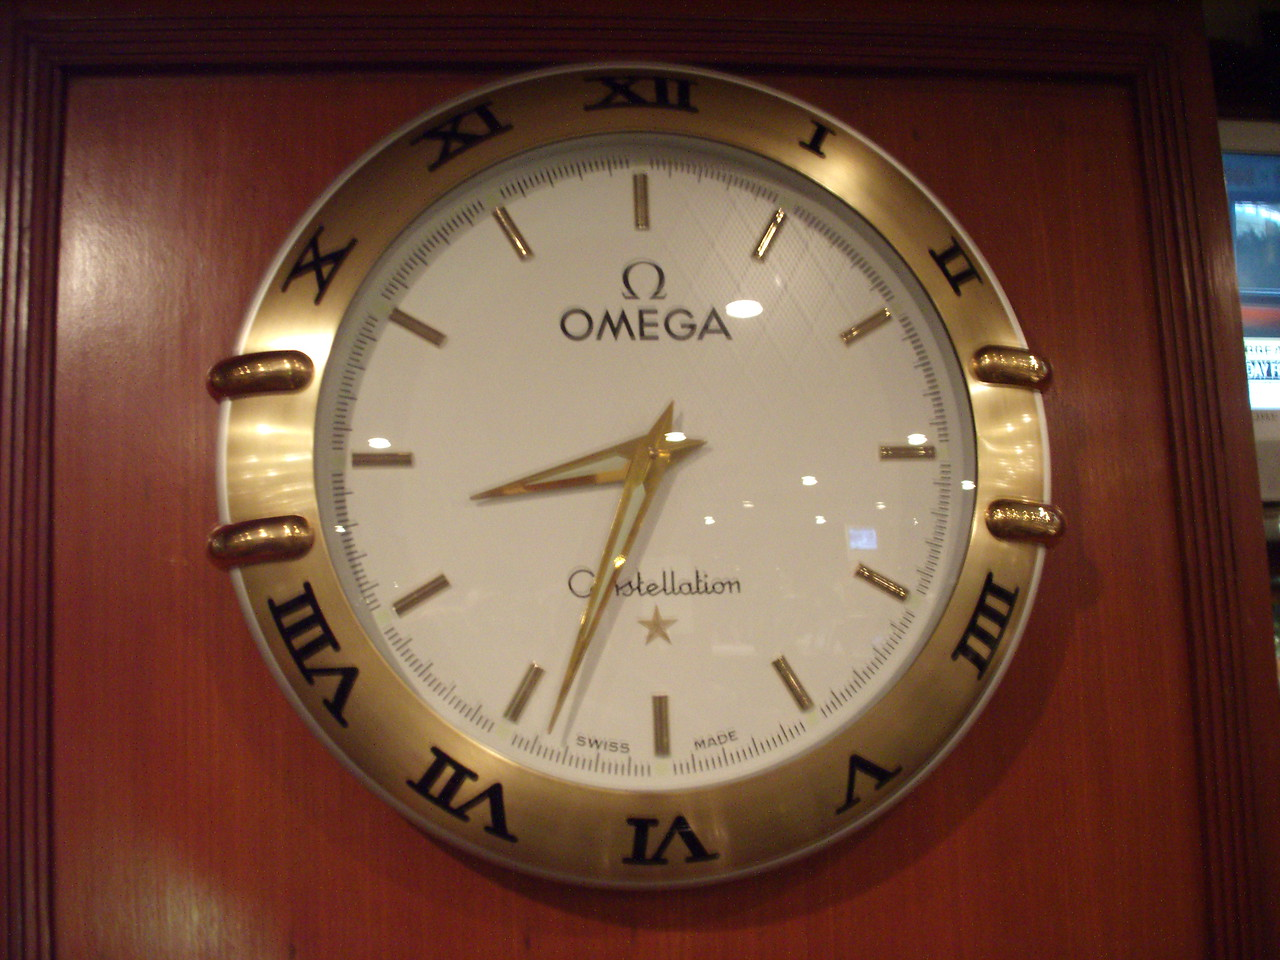 Omega wall clock at the Taj Mahal Hotel gym